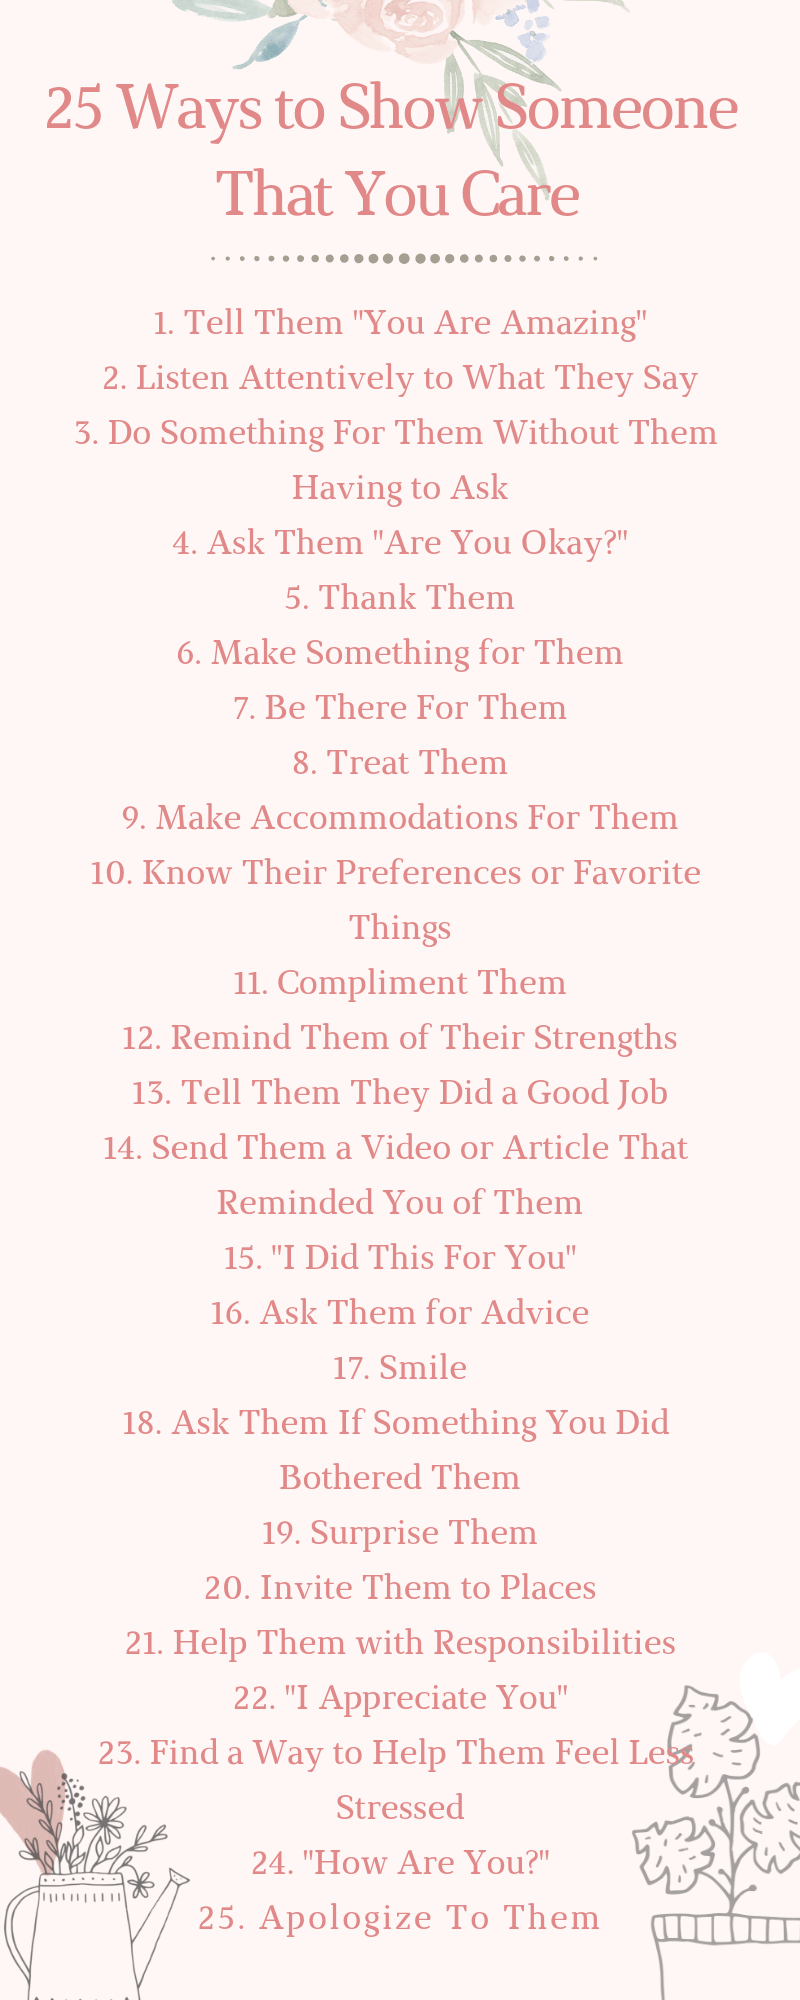 25 Ways to Show Someone That You Care List - Tips for Self Growth